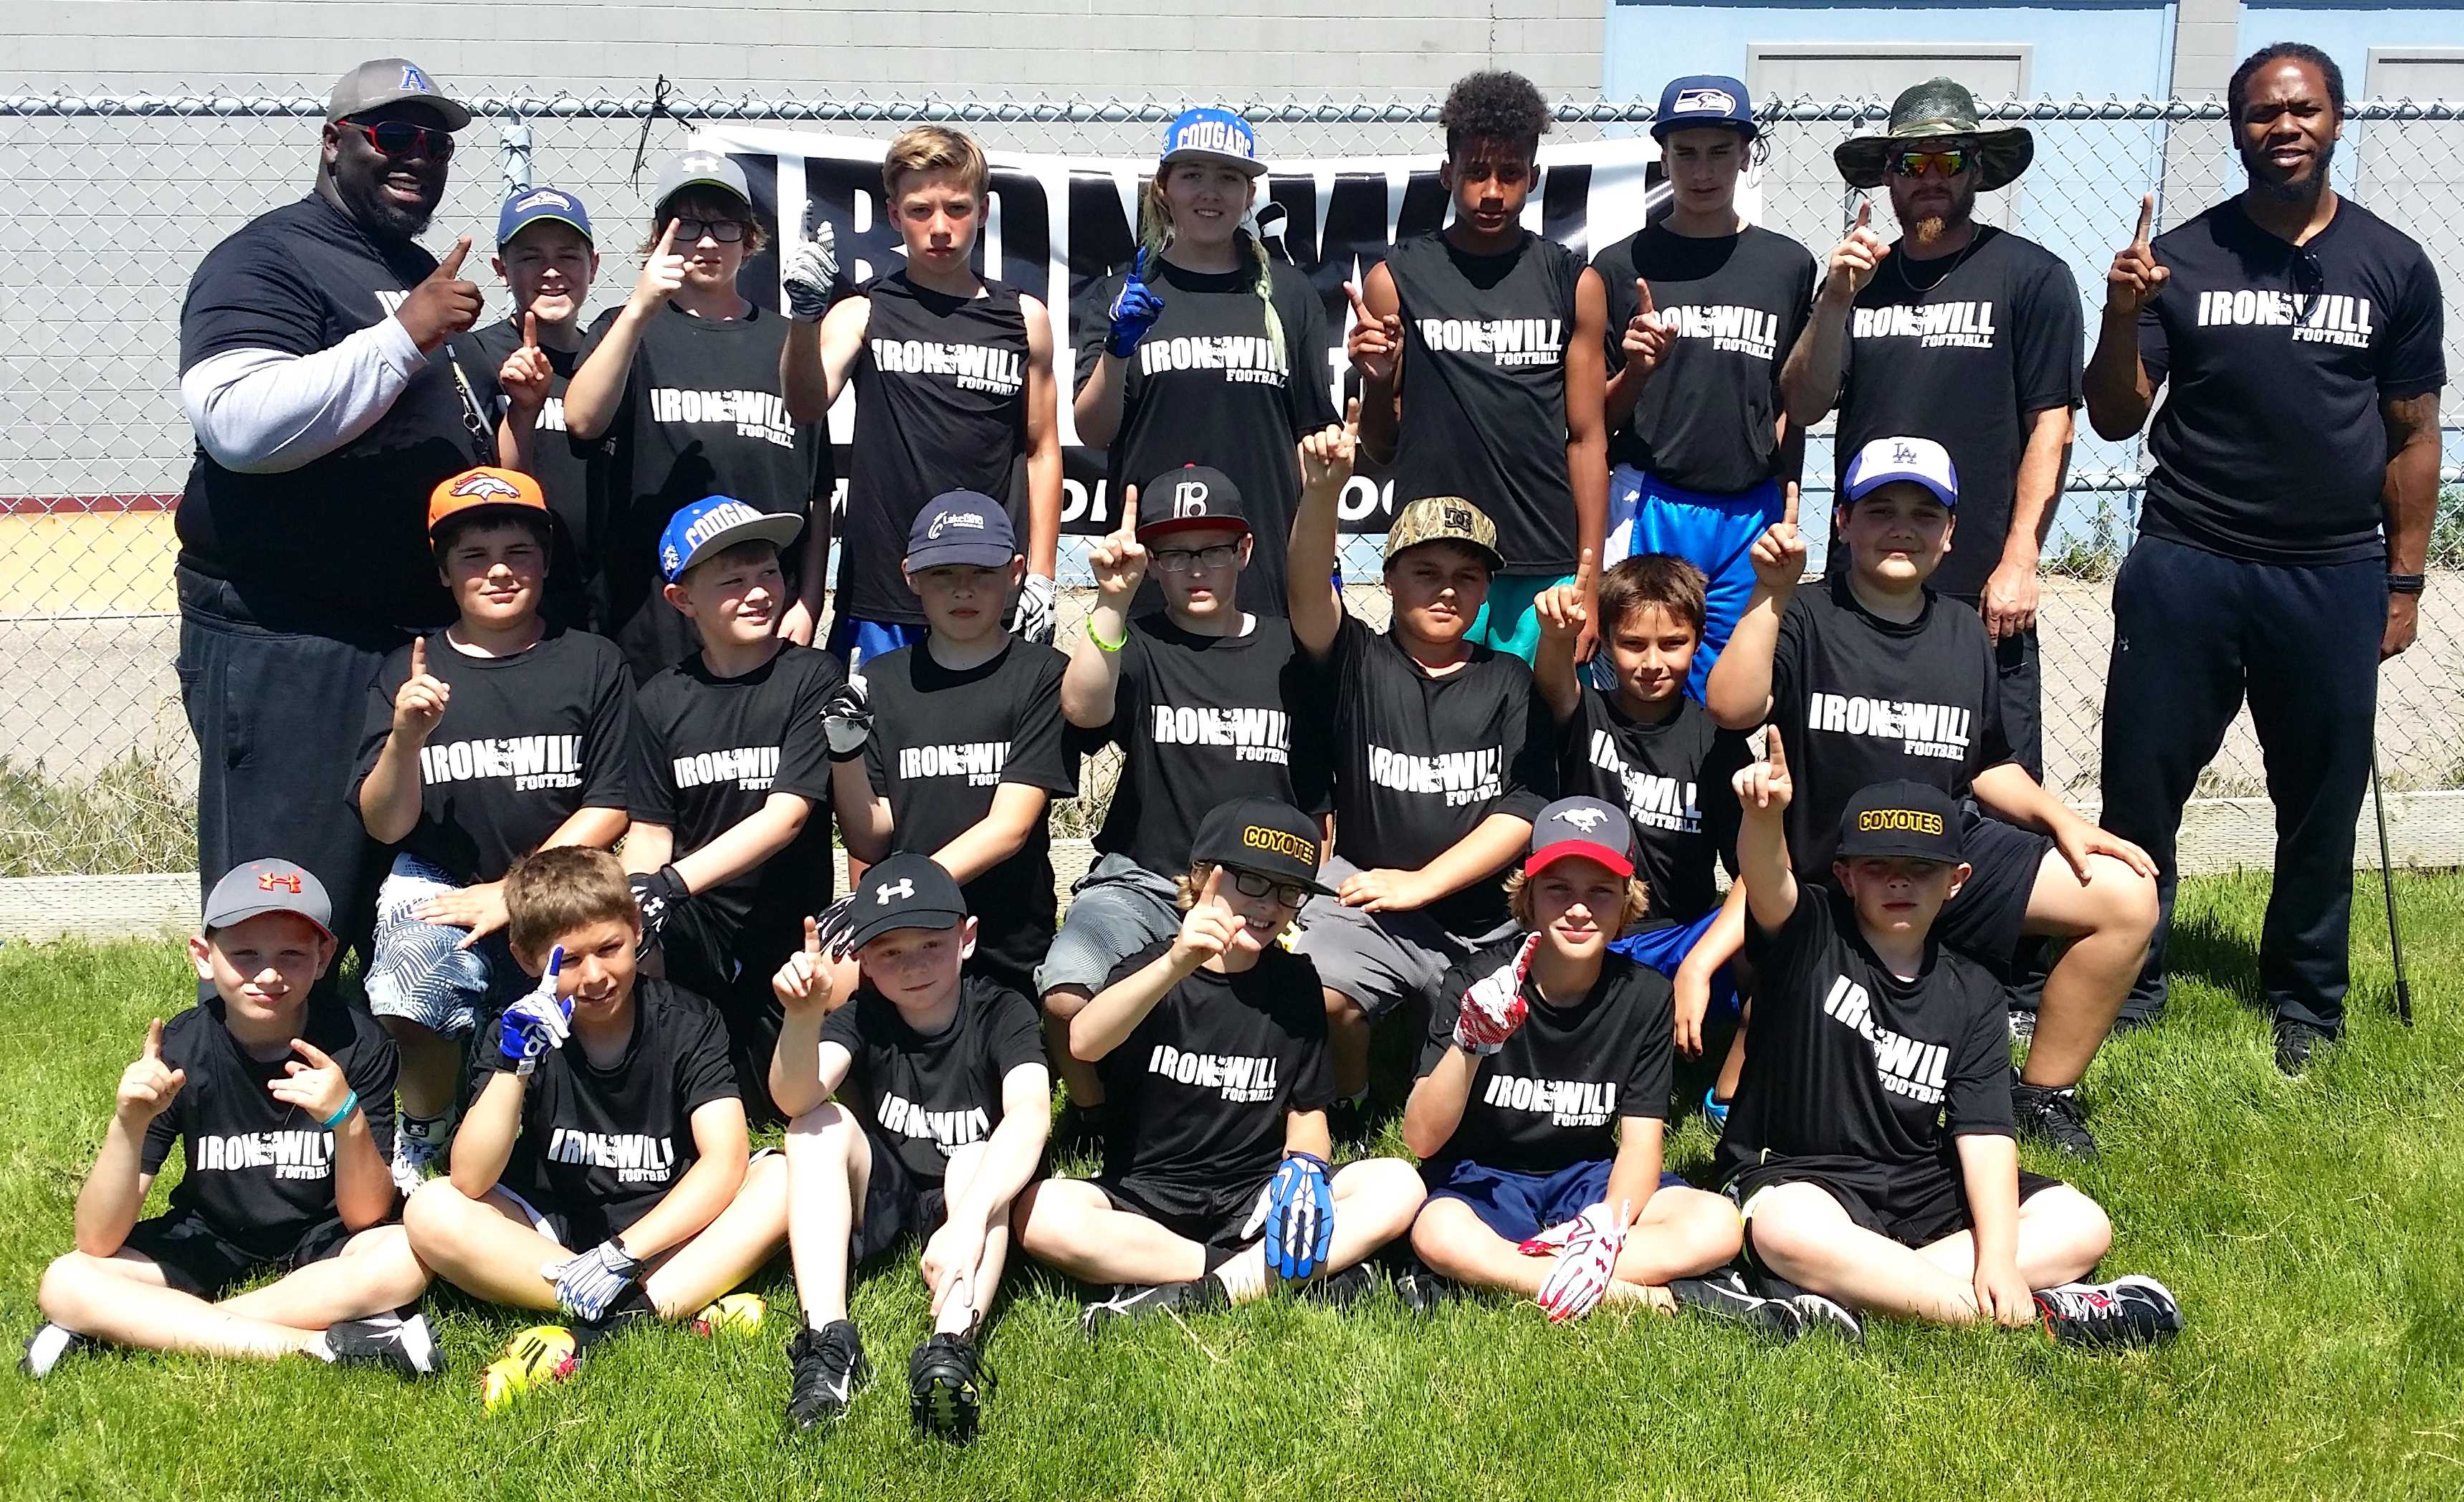 IRONWILL FOOTBALL Performance Camp Lethbridge